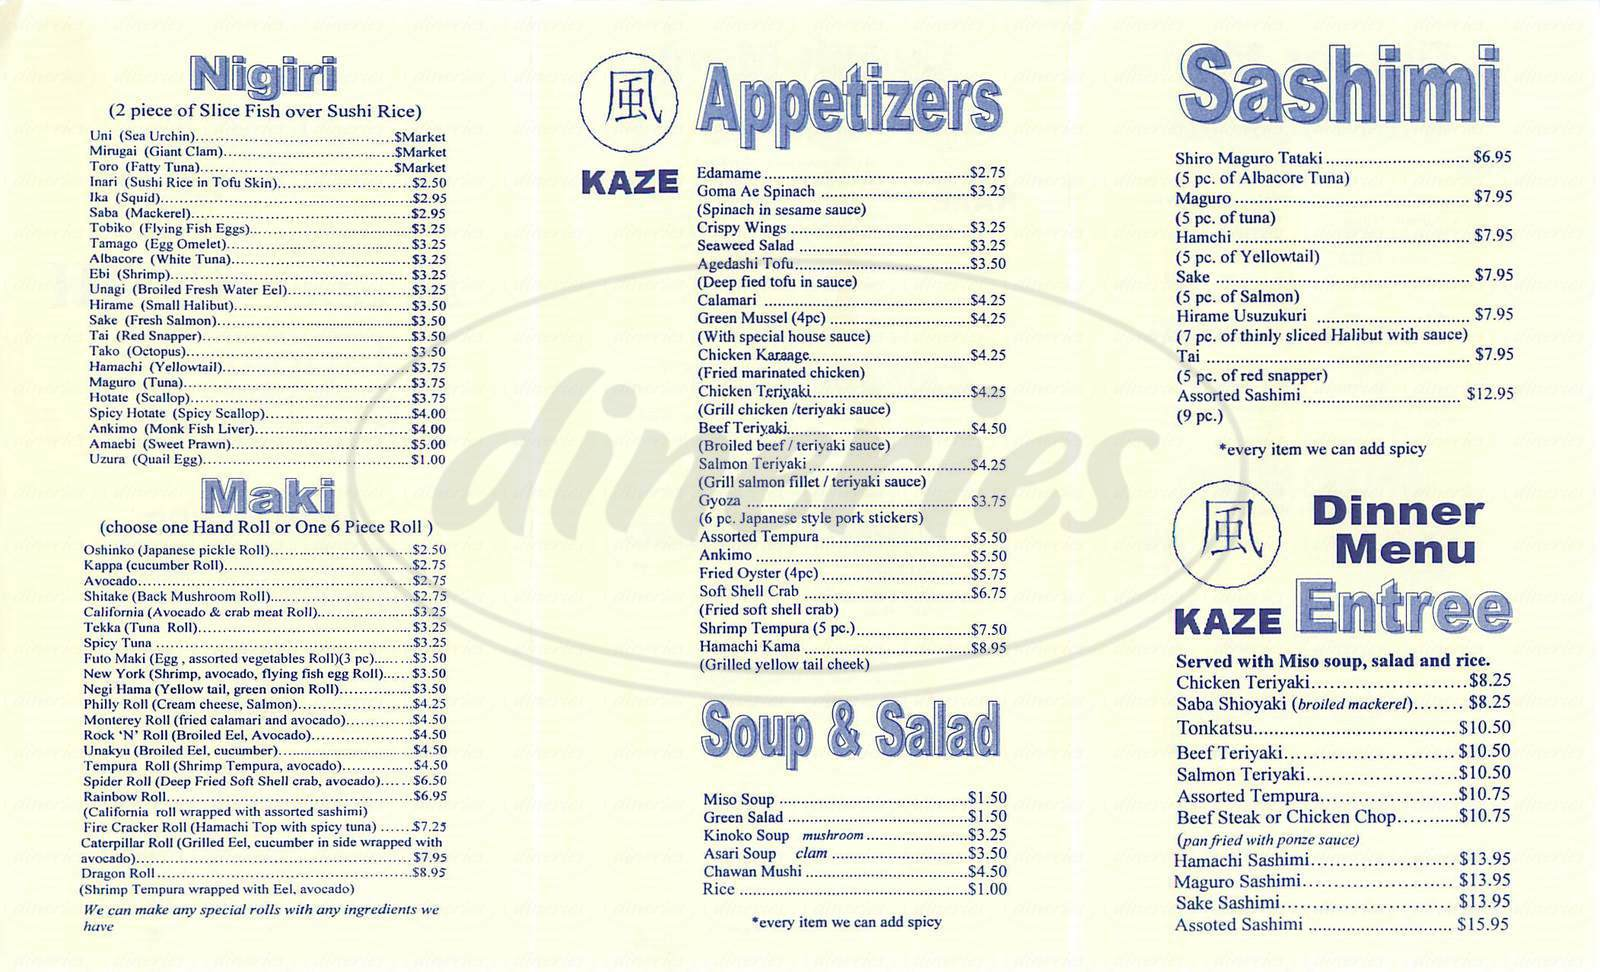 menu for Kaze Sushi